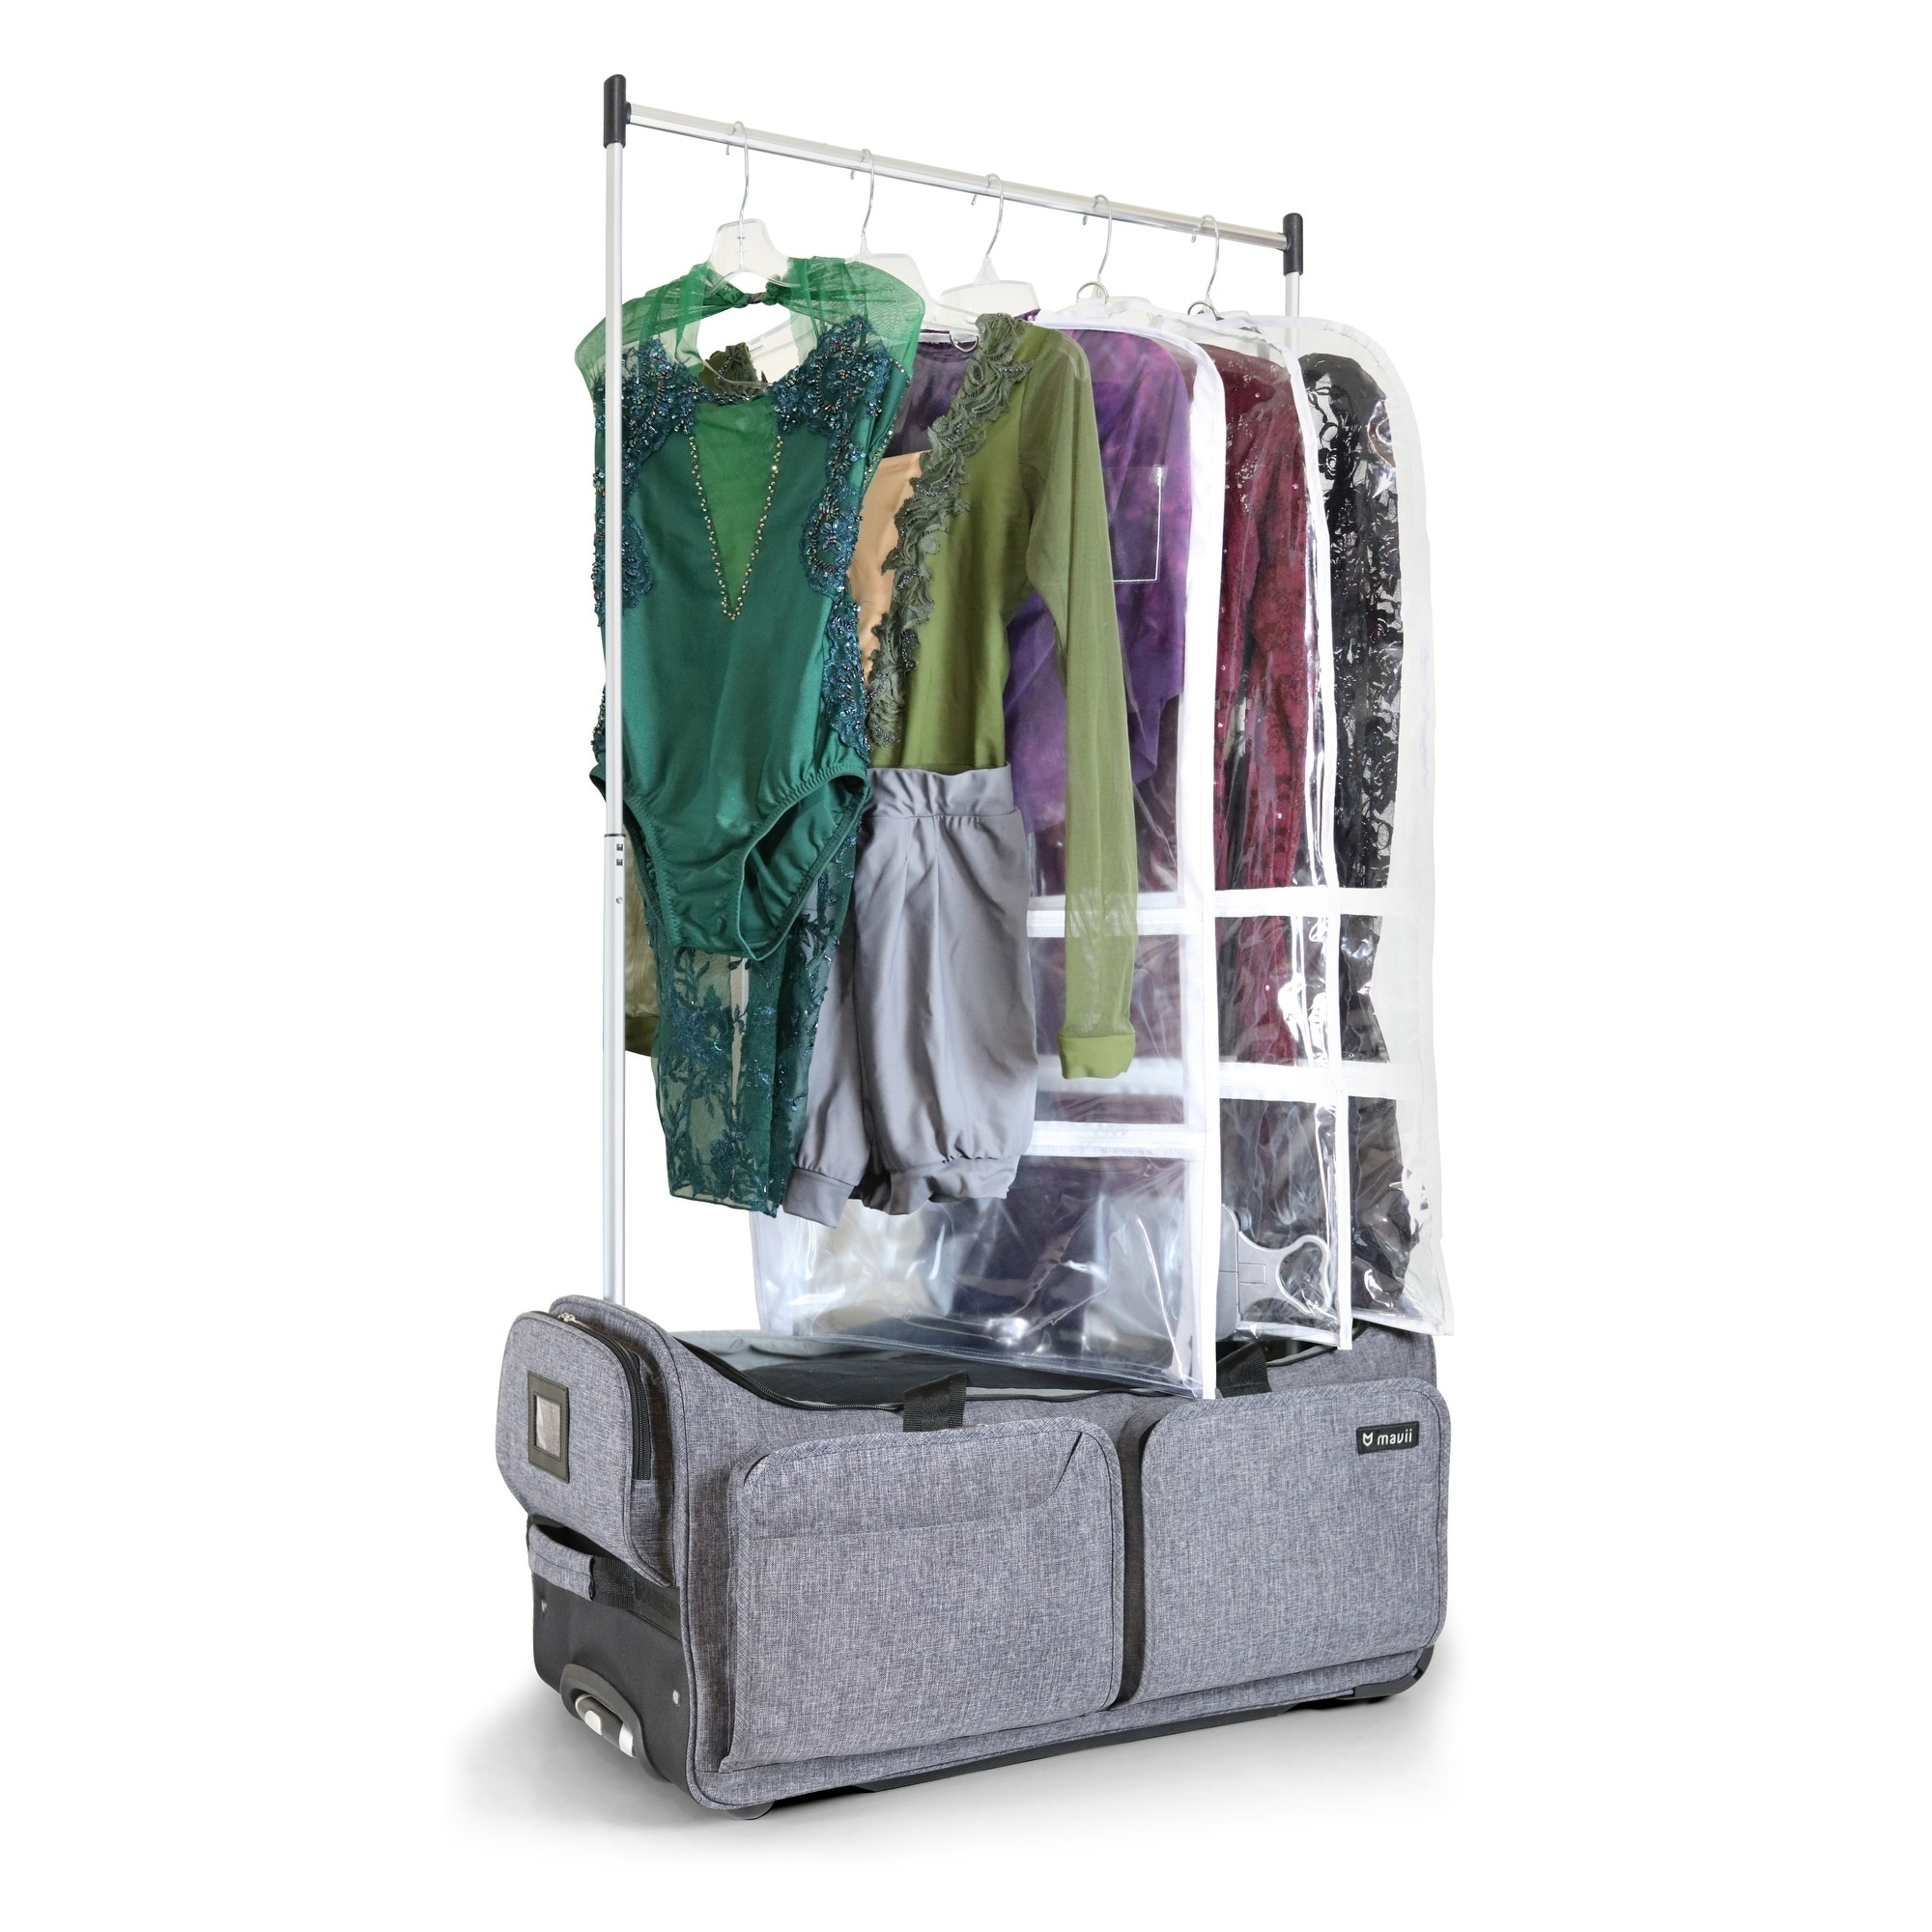 Duffel Bag With Garment Rack And Multi Compartment /& 28 Inch Wheeled For Travel